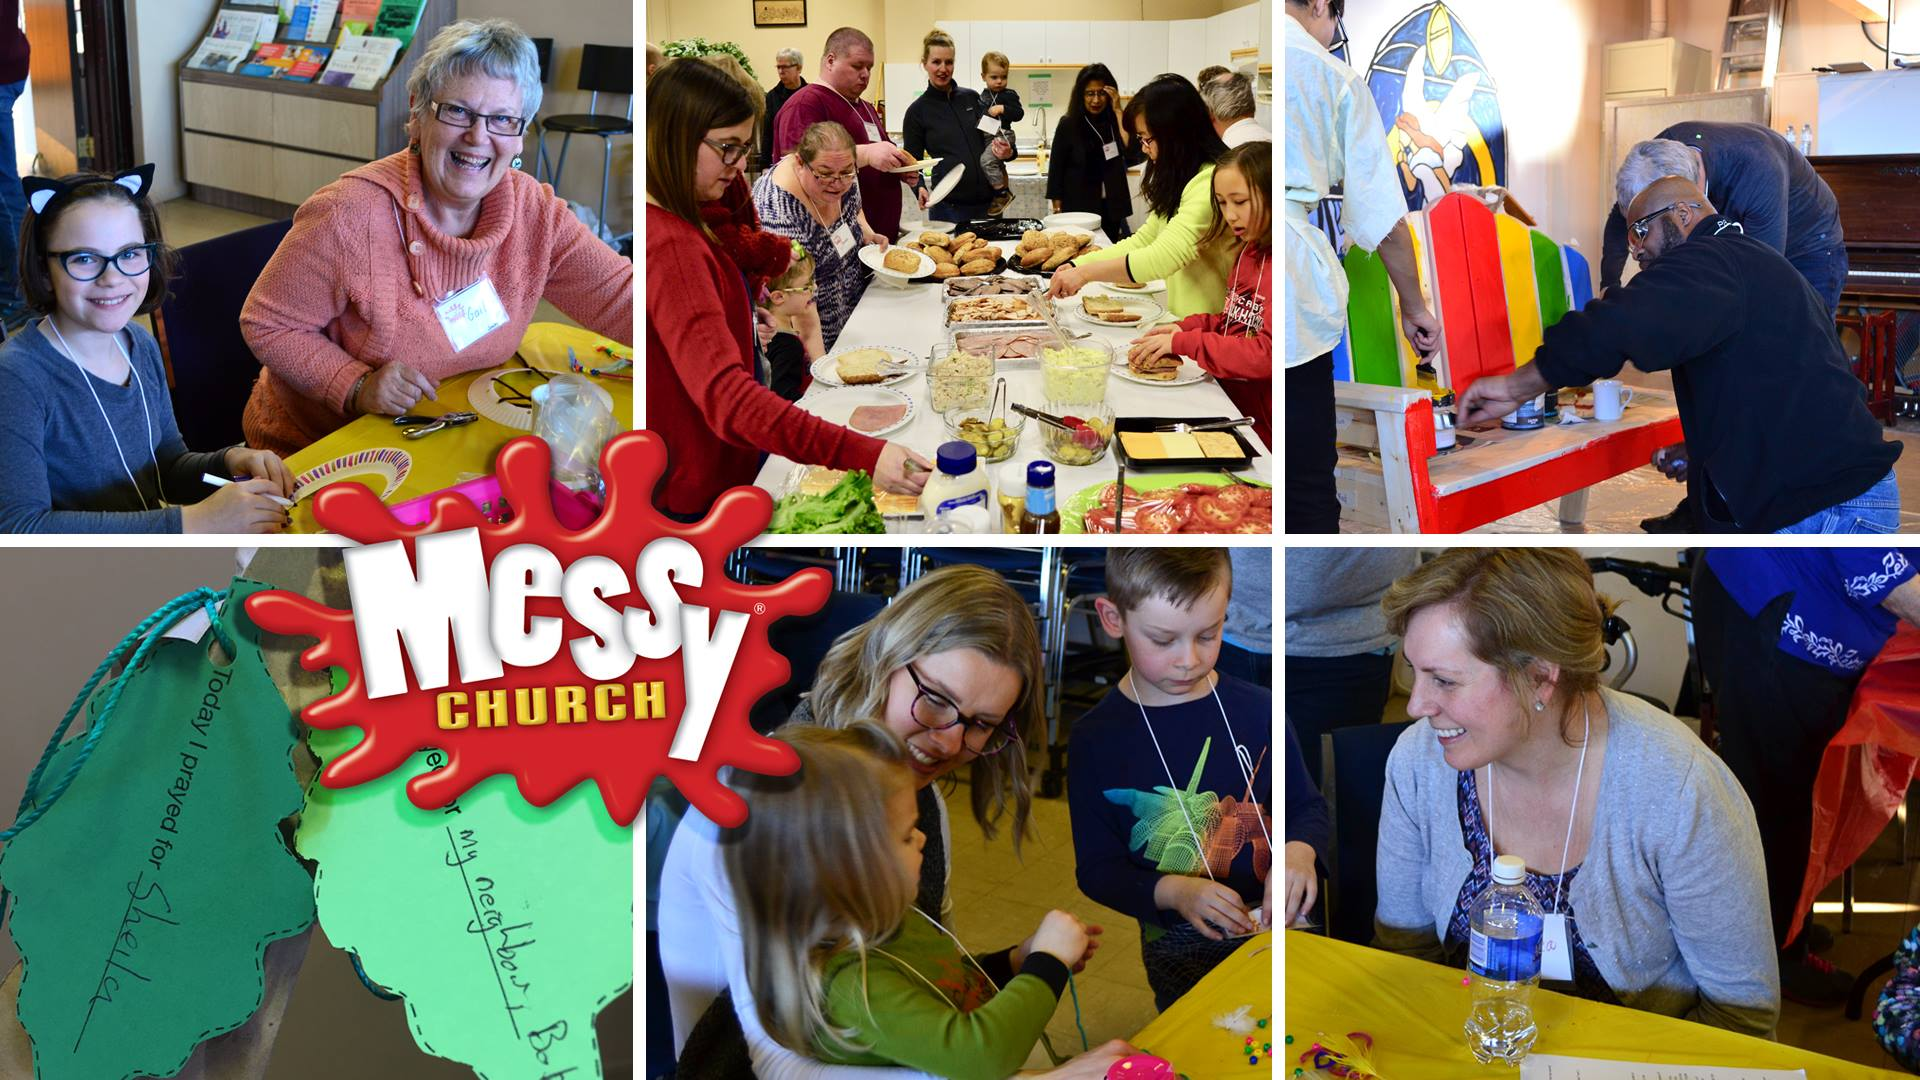 It's Messy Church – this Saturday at 4pm